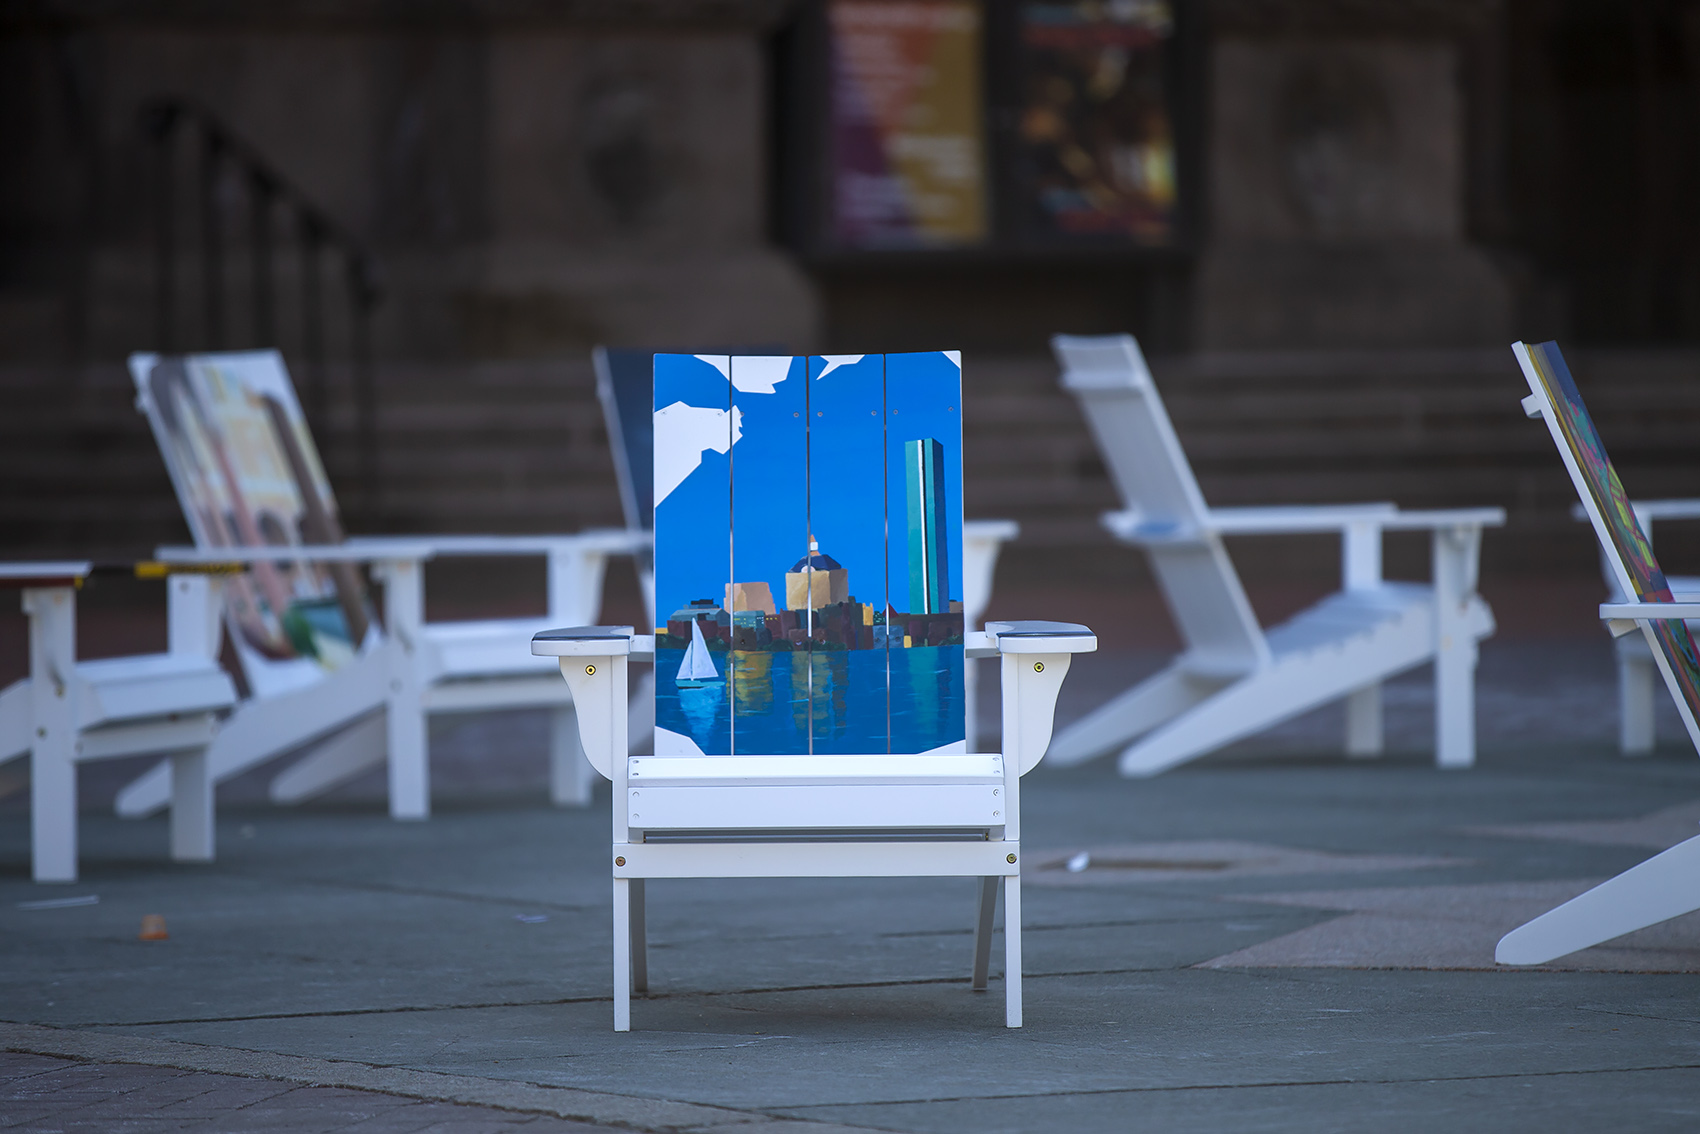 One of the chairs, painted with the Charles River and the Boston skyline. (Jesse Costa/WBUR)